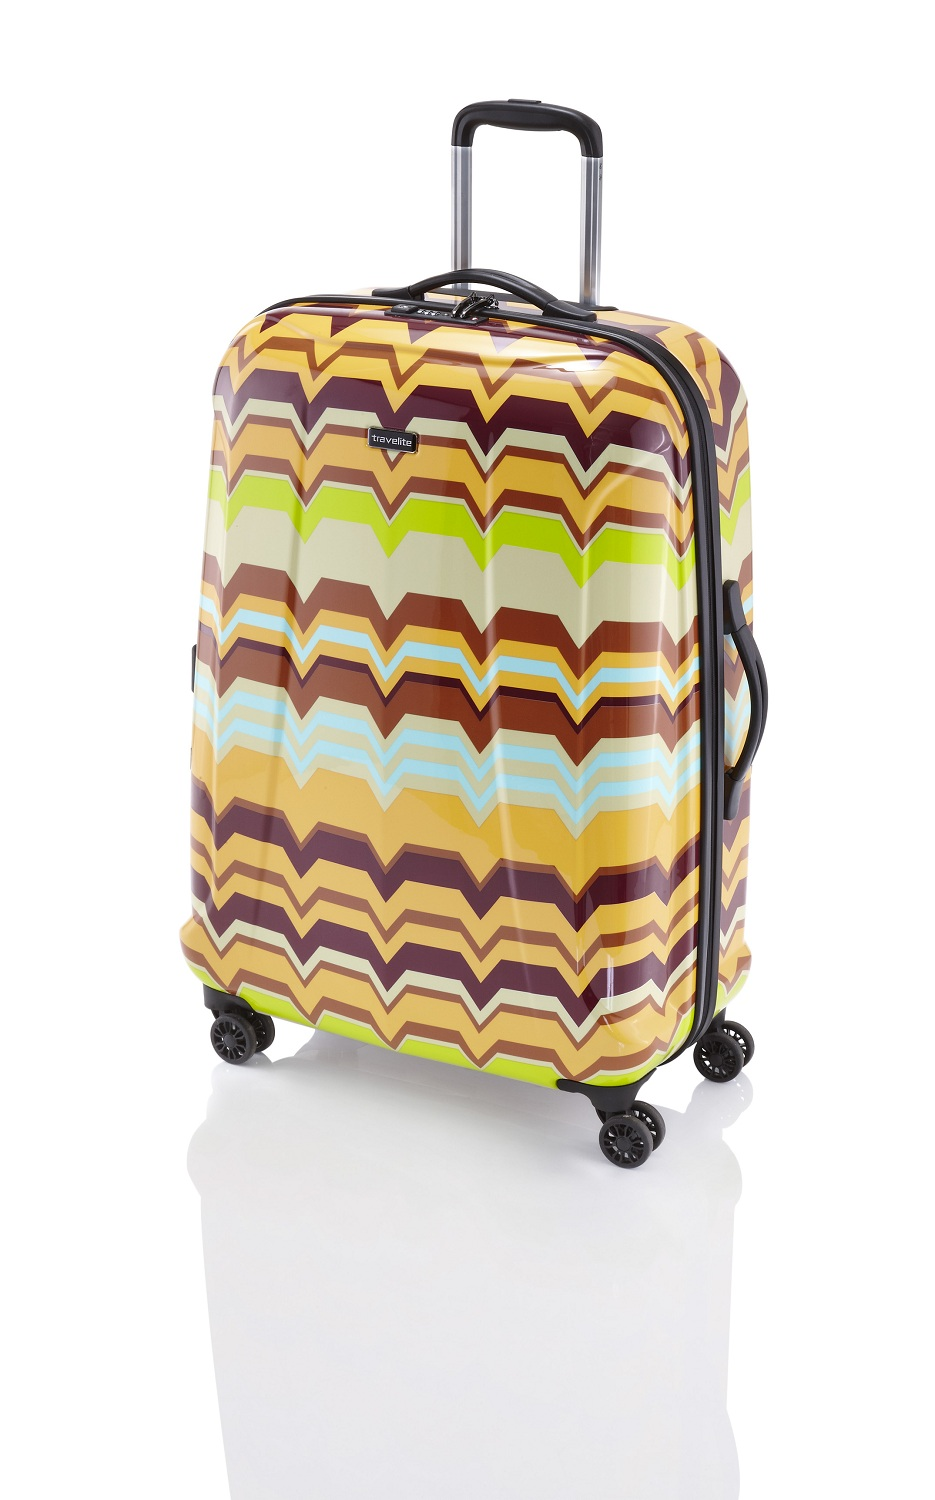 Travelite Graphix 4w M Yellow zigzag